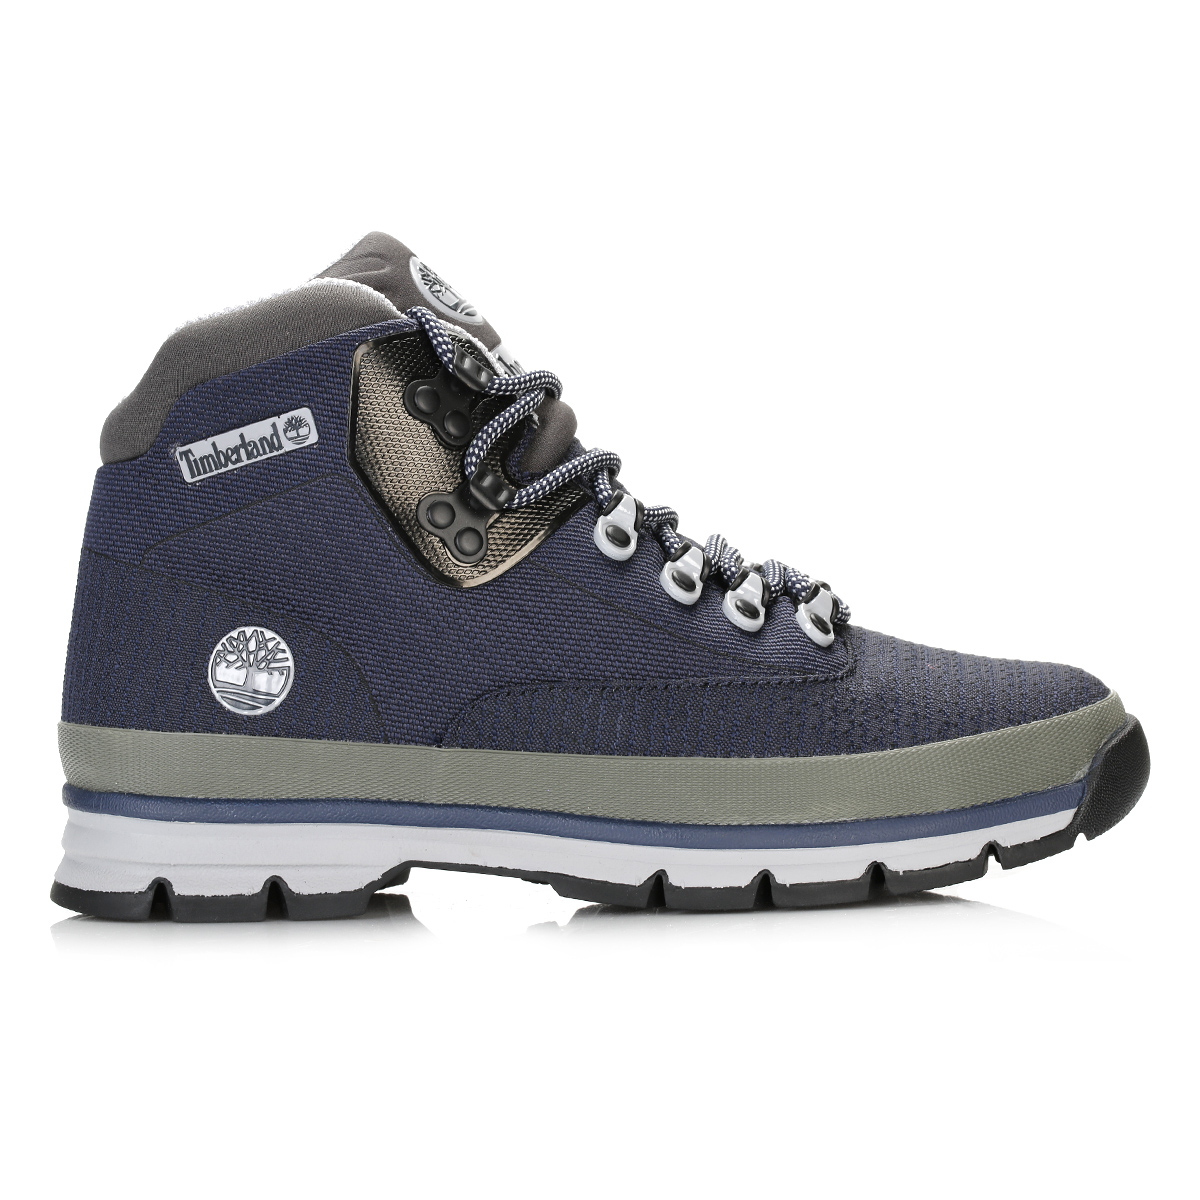 Timberland Mens Blue Grey Hiker Jacquard Ankle Boots Lace